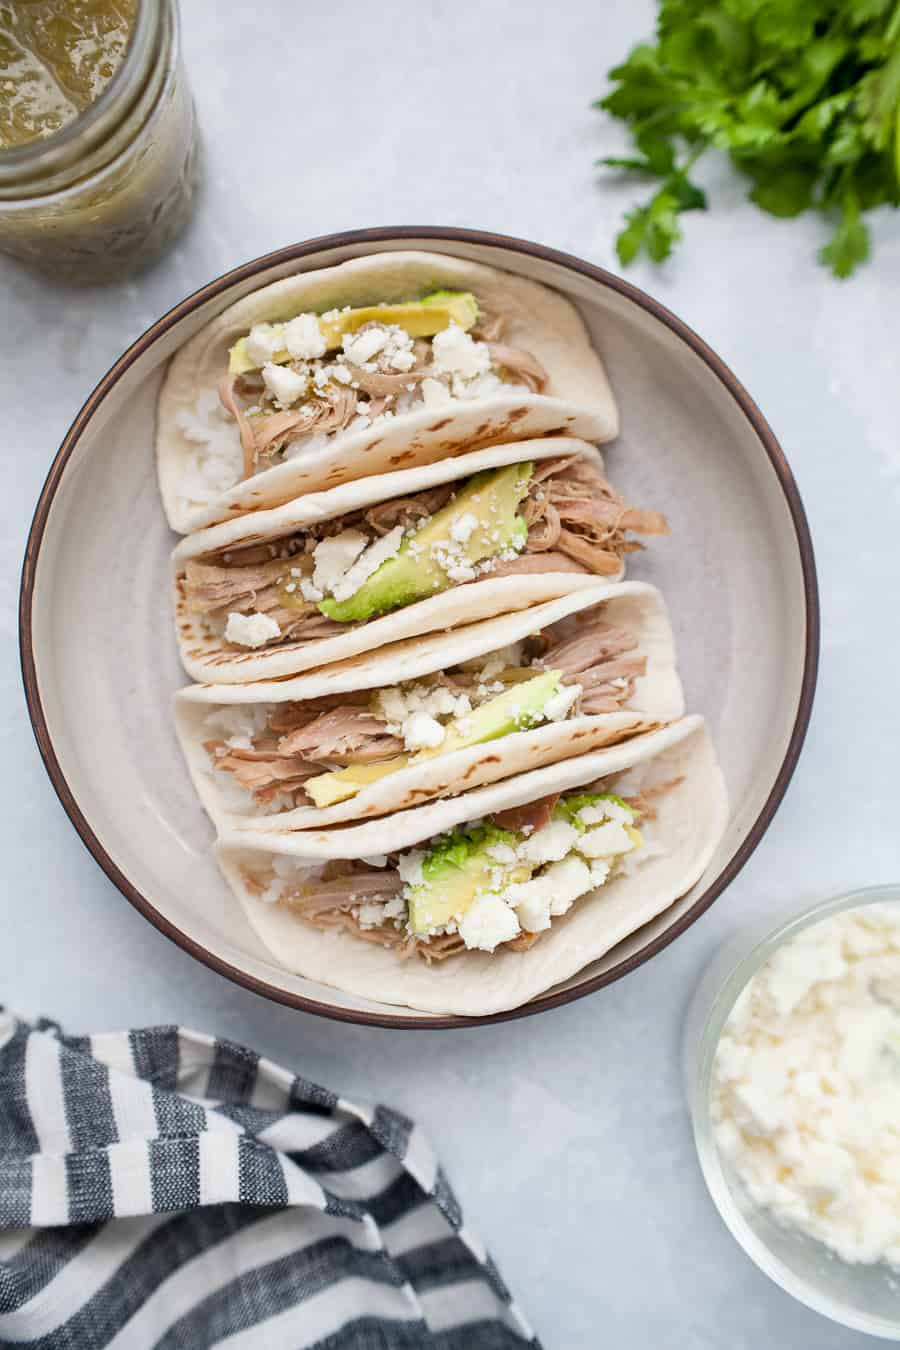 These Salsa Verde Pulled Pork tacos are the perfect dish for lunch, dinner, or just because they're so yummy! They're made with slow cooker Salsa Verde Pulled Pork, cotija cheese, avocado and a little extra salsa verde poured on for good measure. You don't need an occasion to indulge with these tacos!